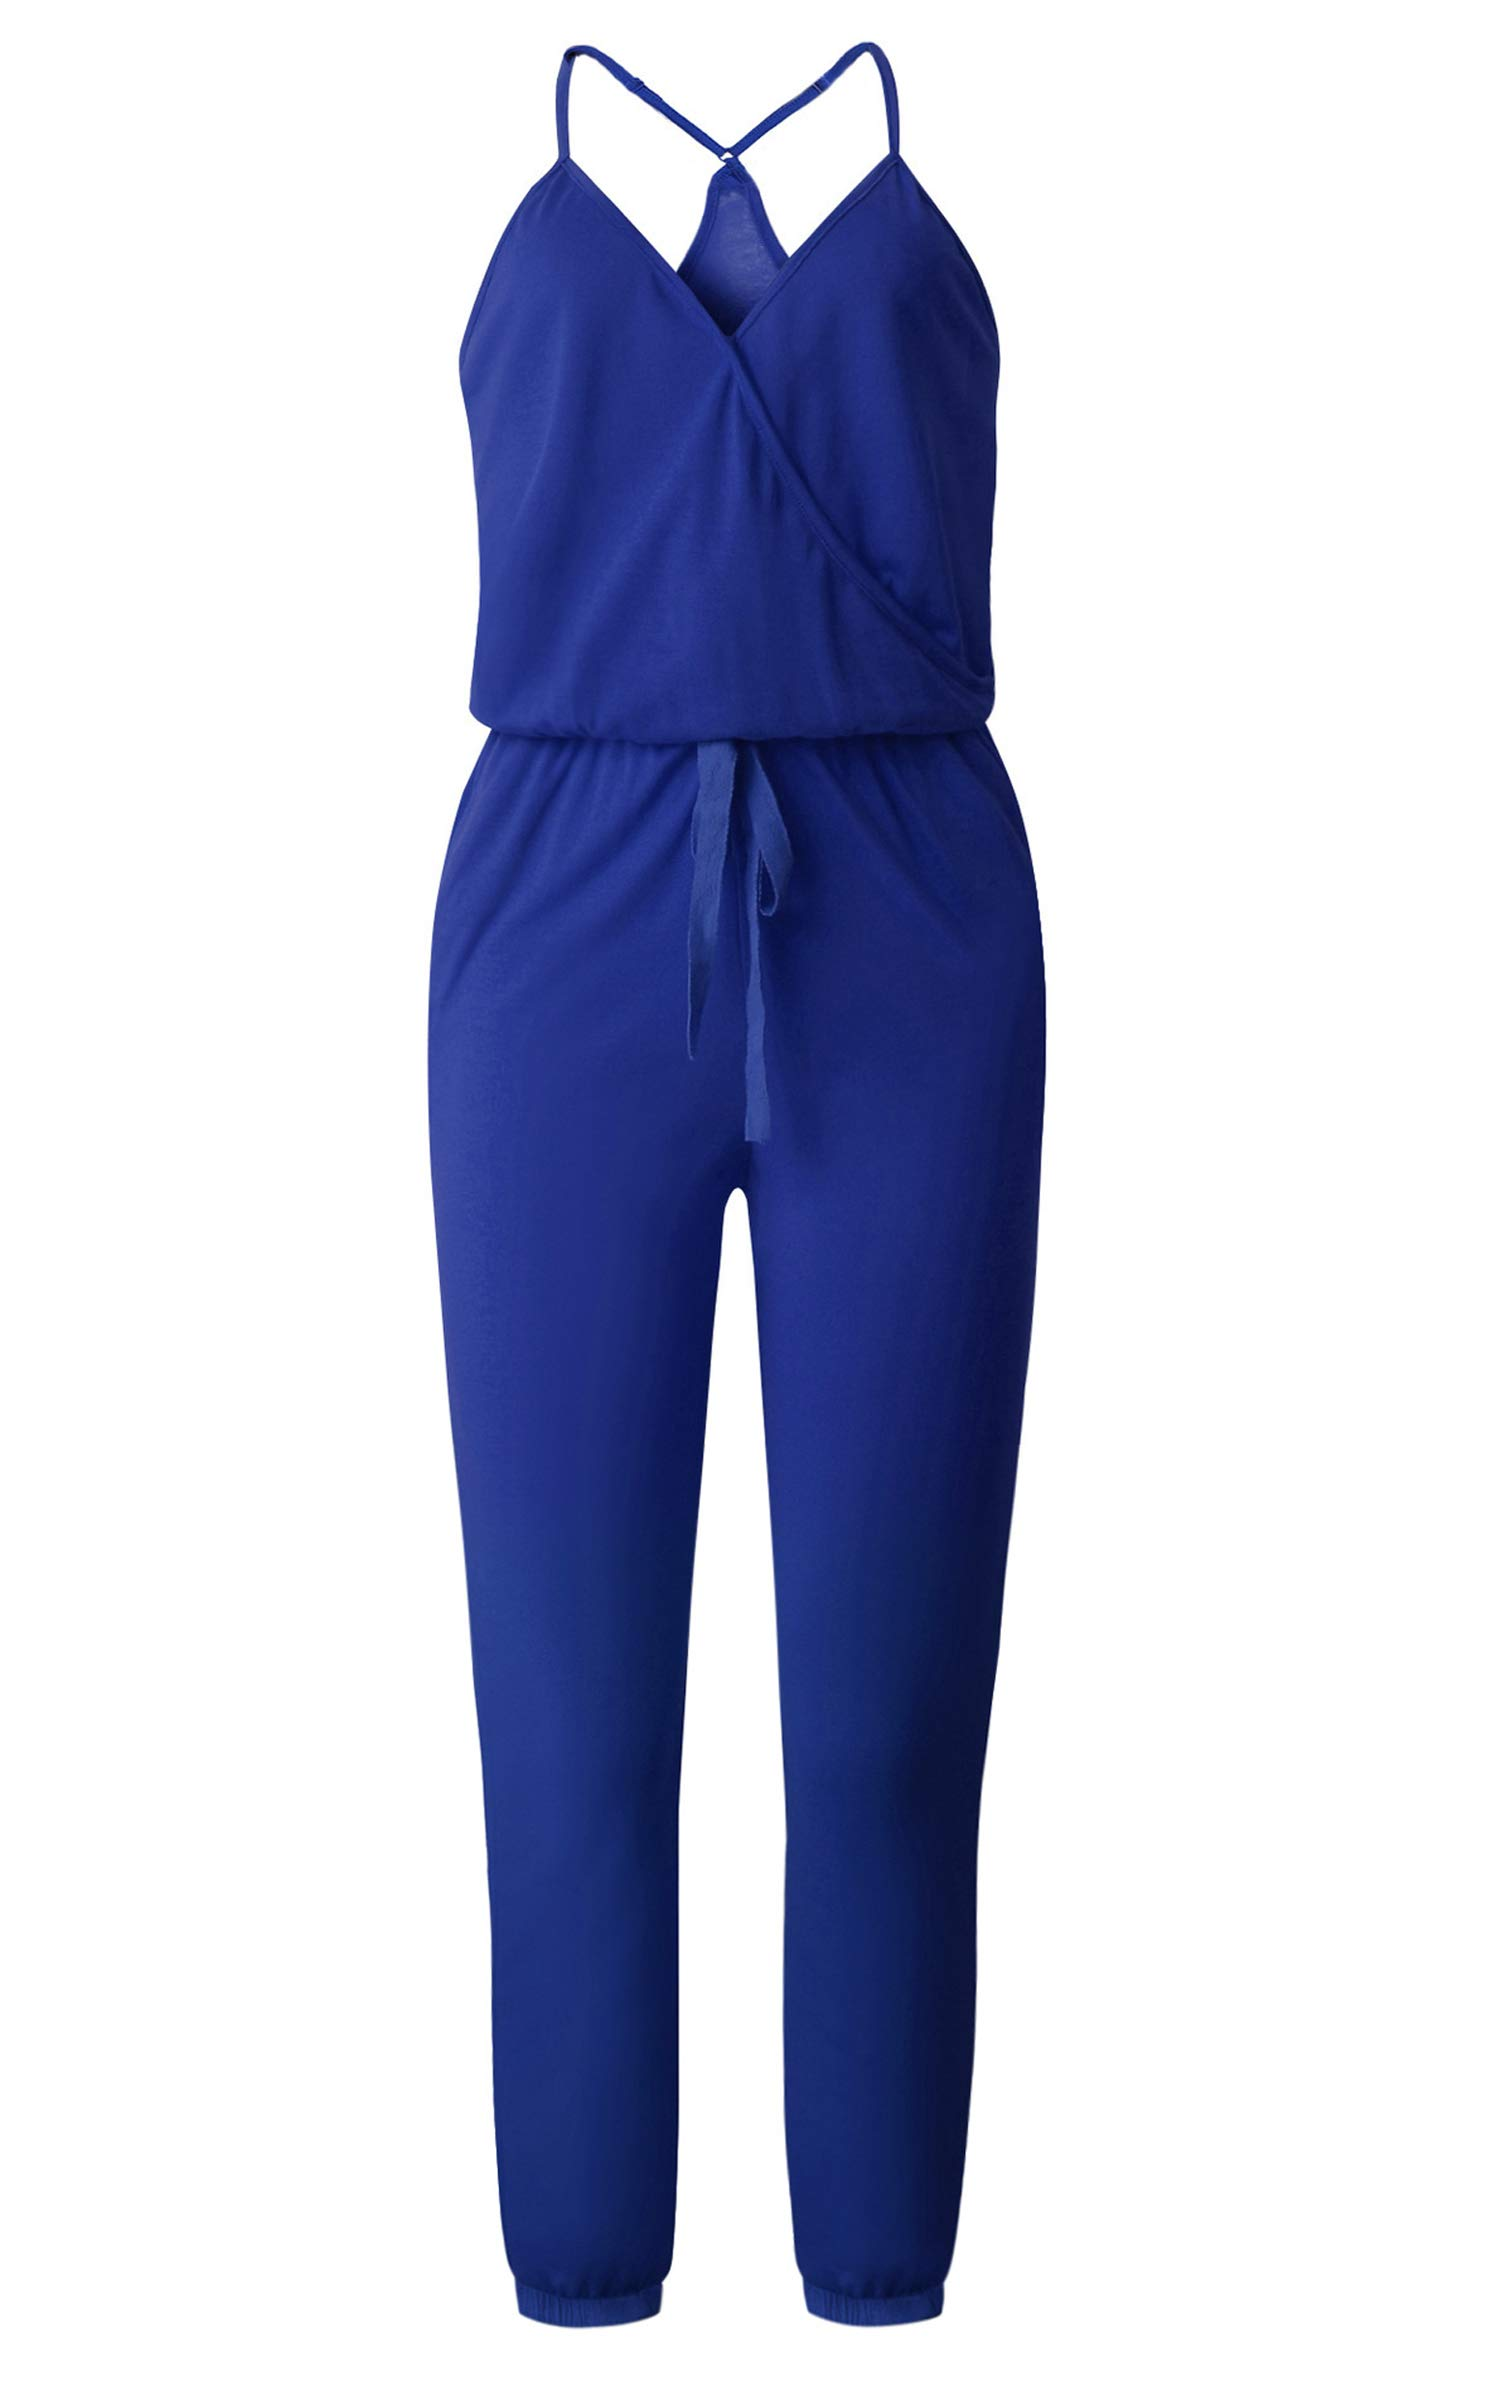 ECOWISH Women's V Neck Spaghetti Strap Drawstring Waisted Long Pants Jumpsuit Rompers Blue M by ECOWISH (Image #3)